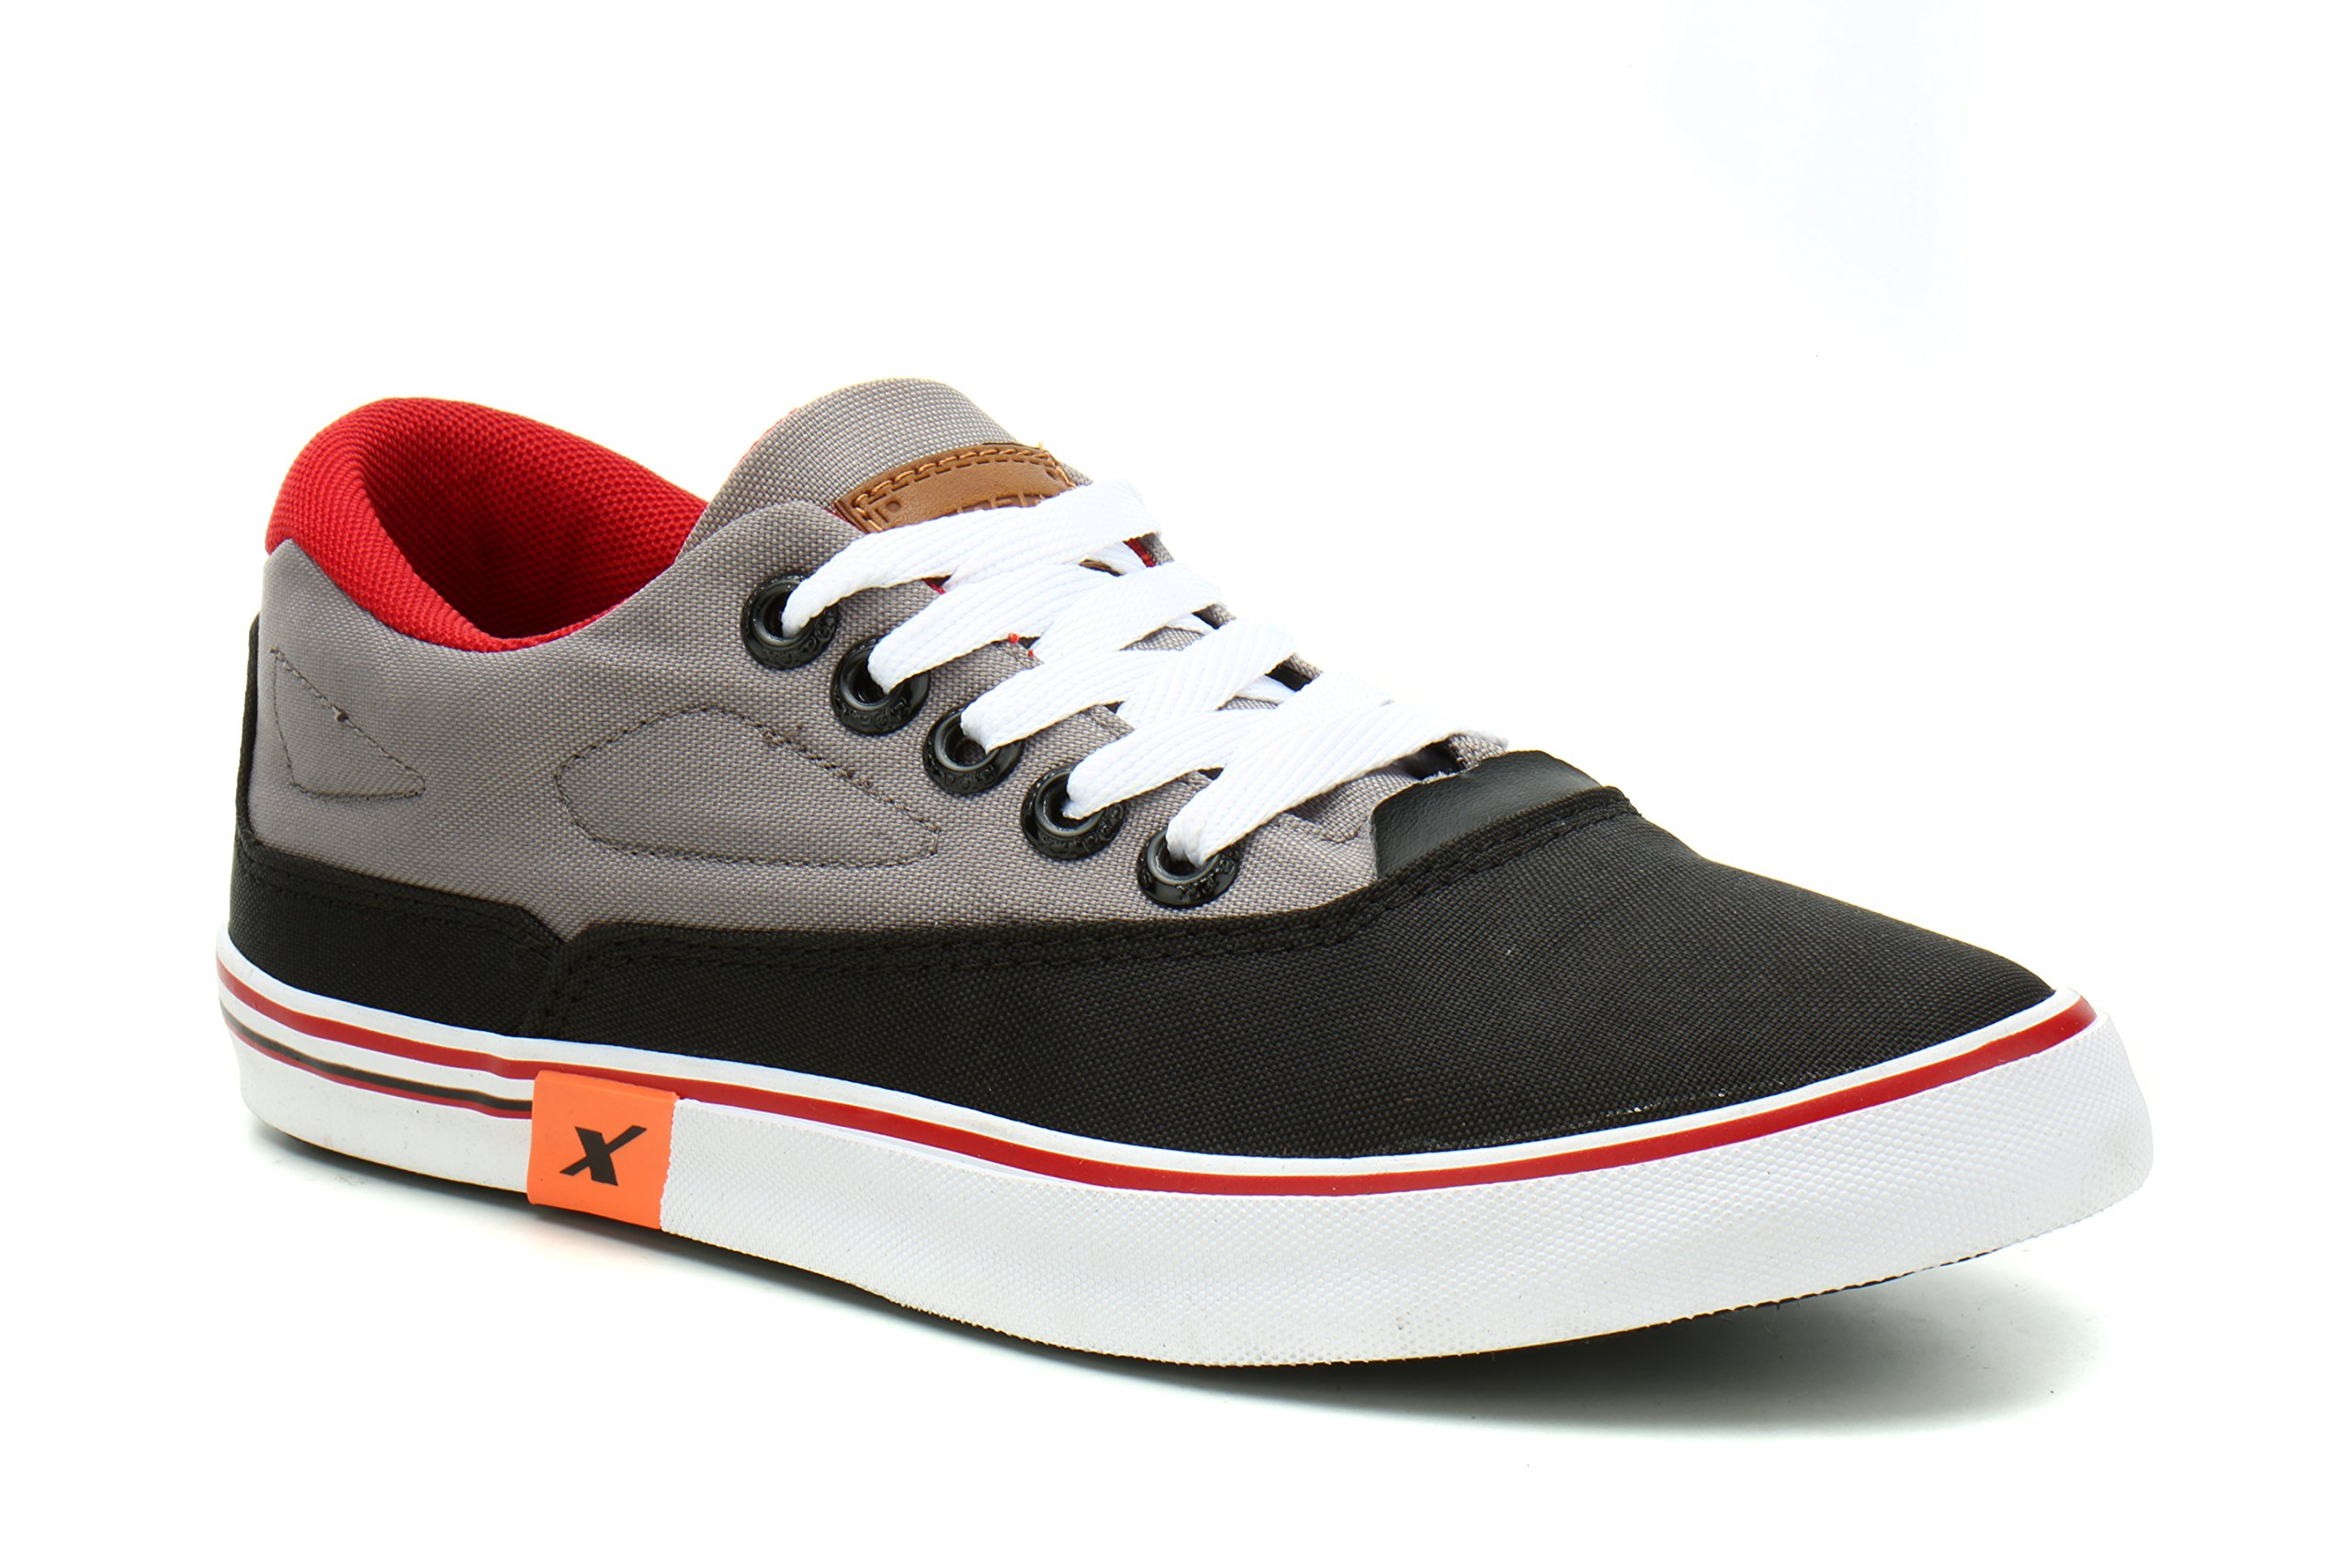 Sparx Men's Sneakers product image